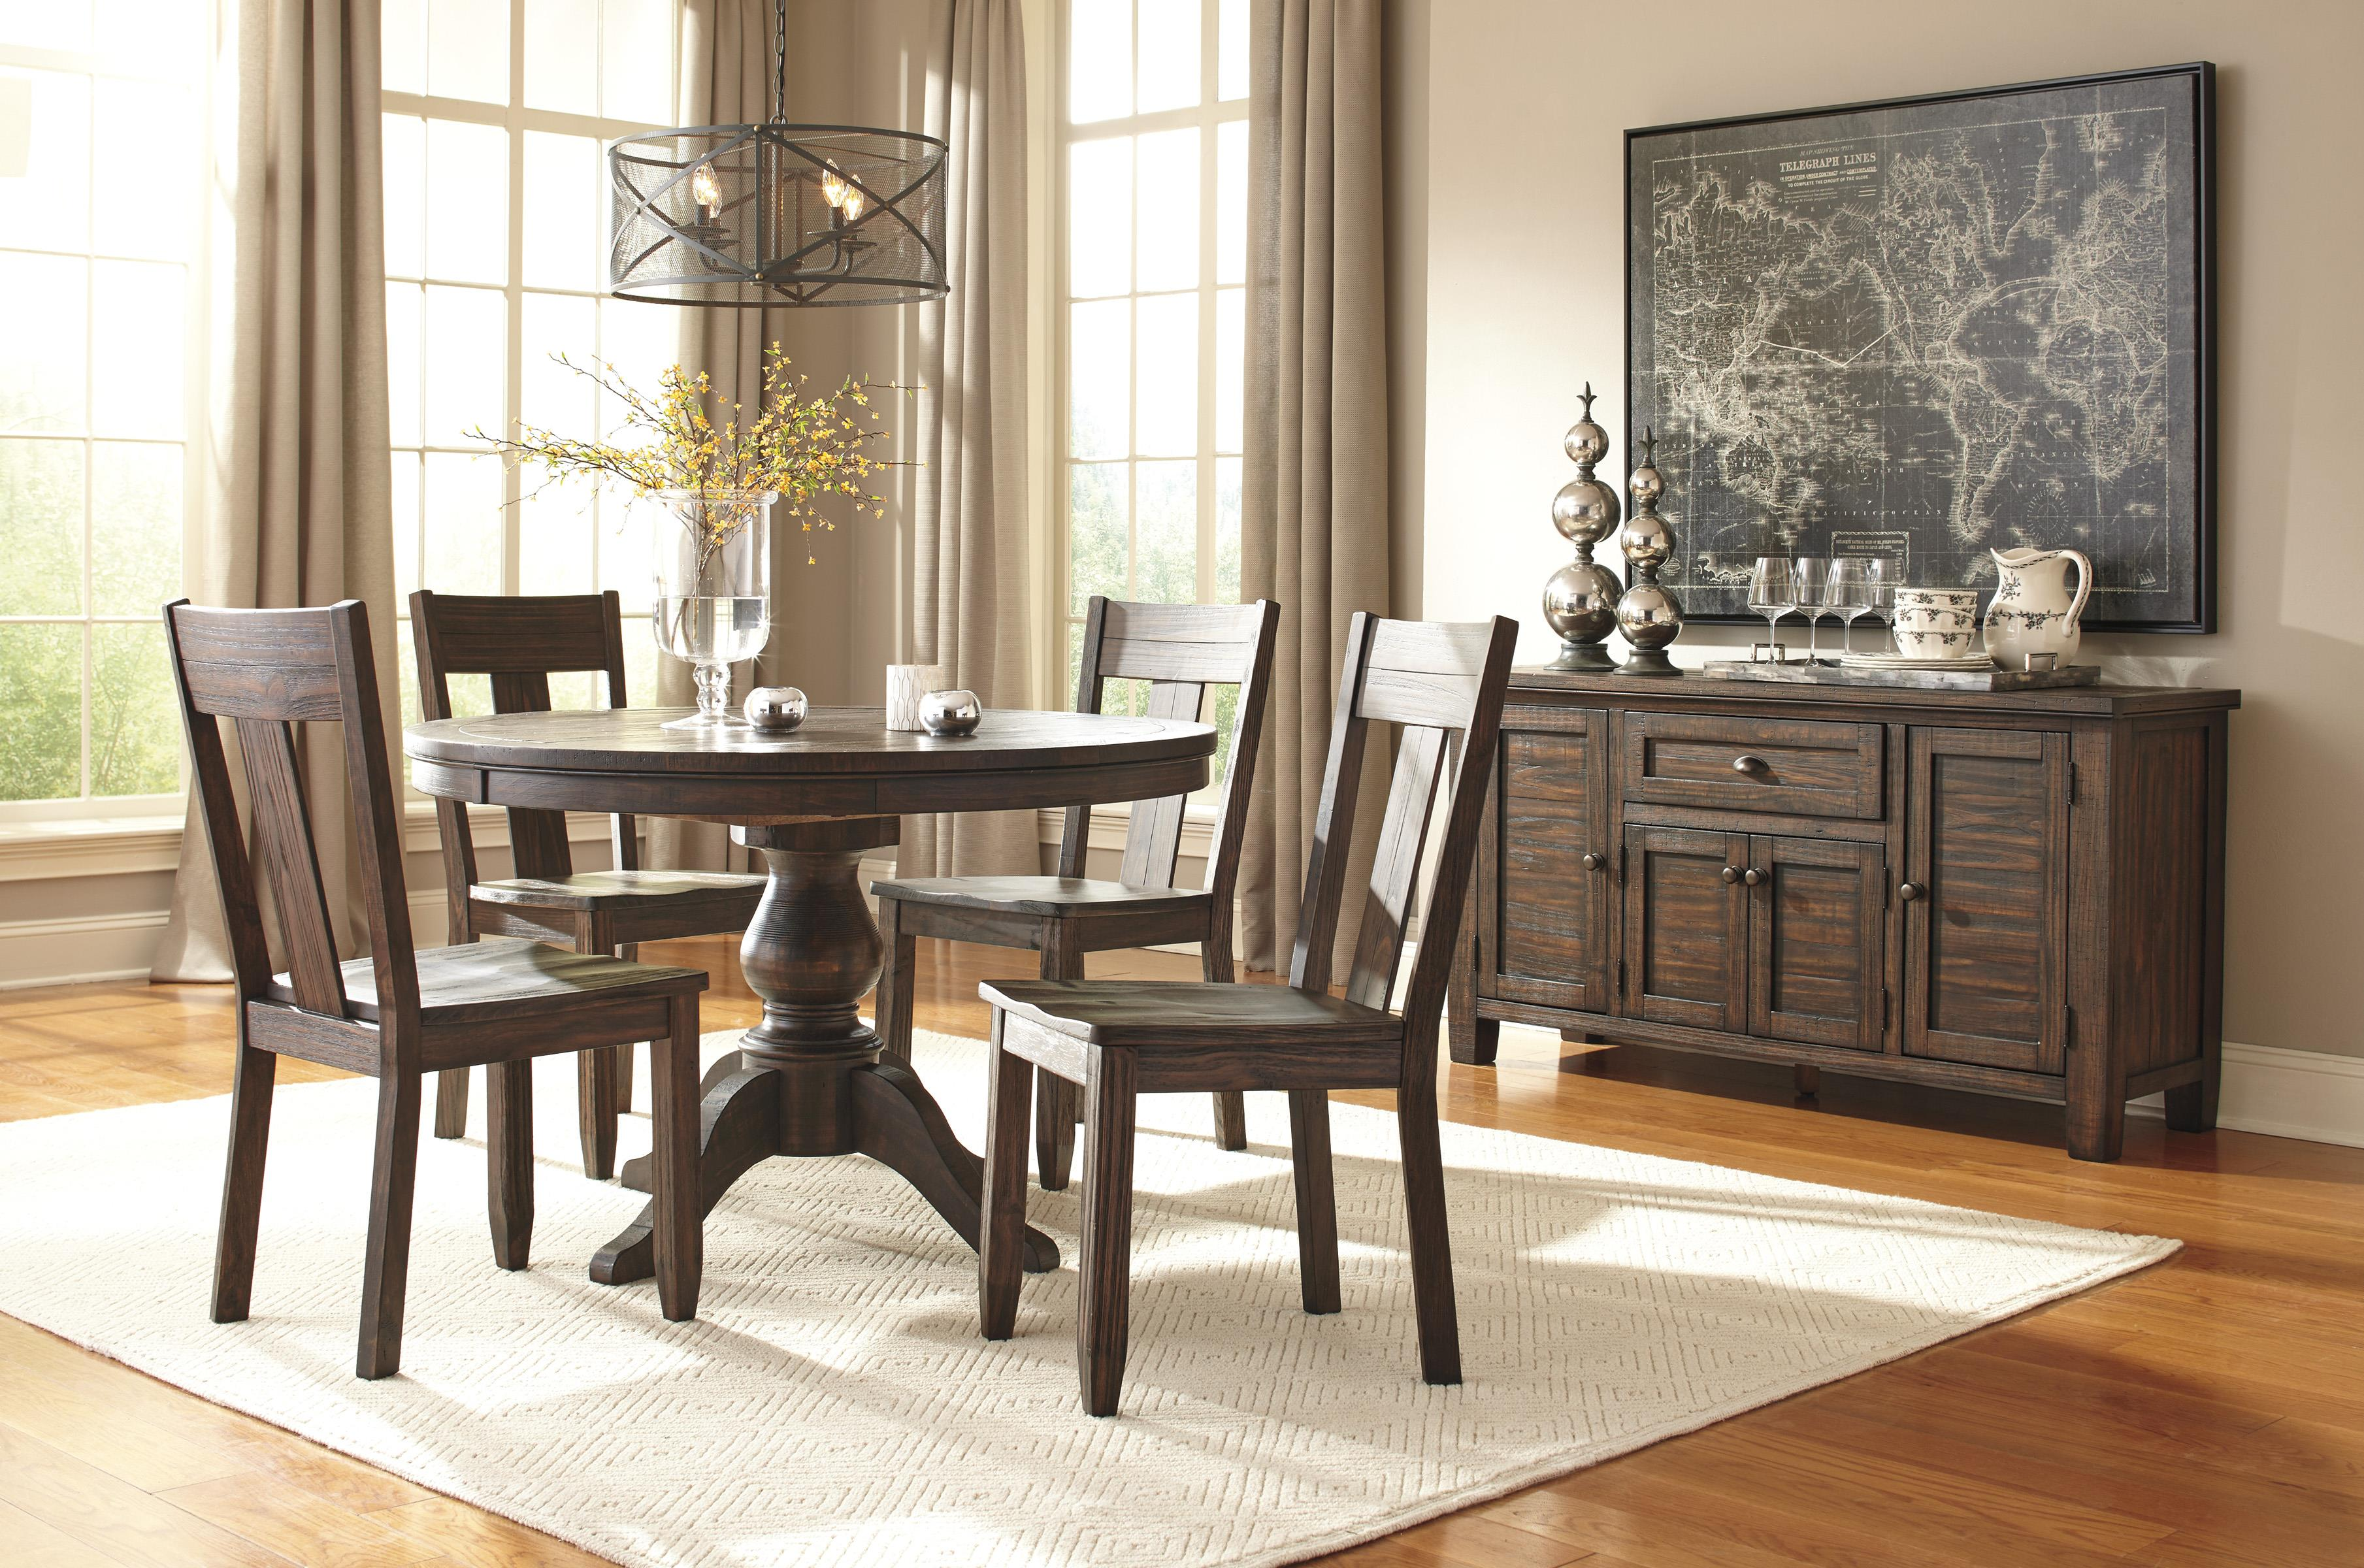 Signature Design by Ashley Trudell Casual Dining Room Group - Item Number: D658 Dining Room Group 1